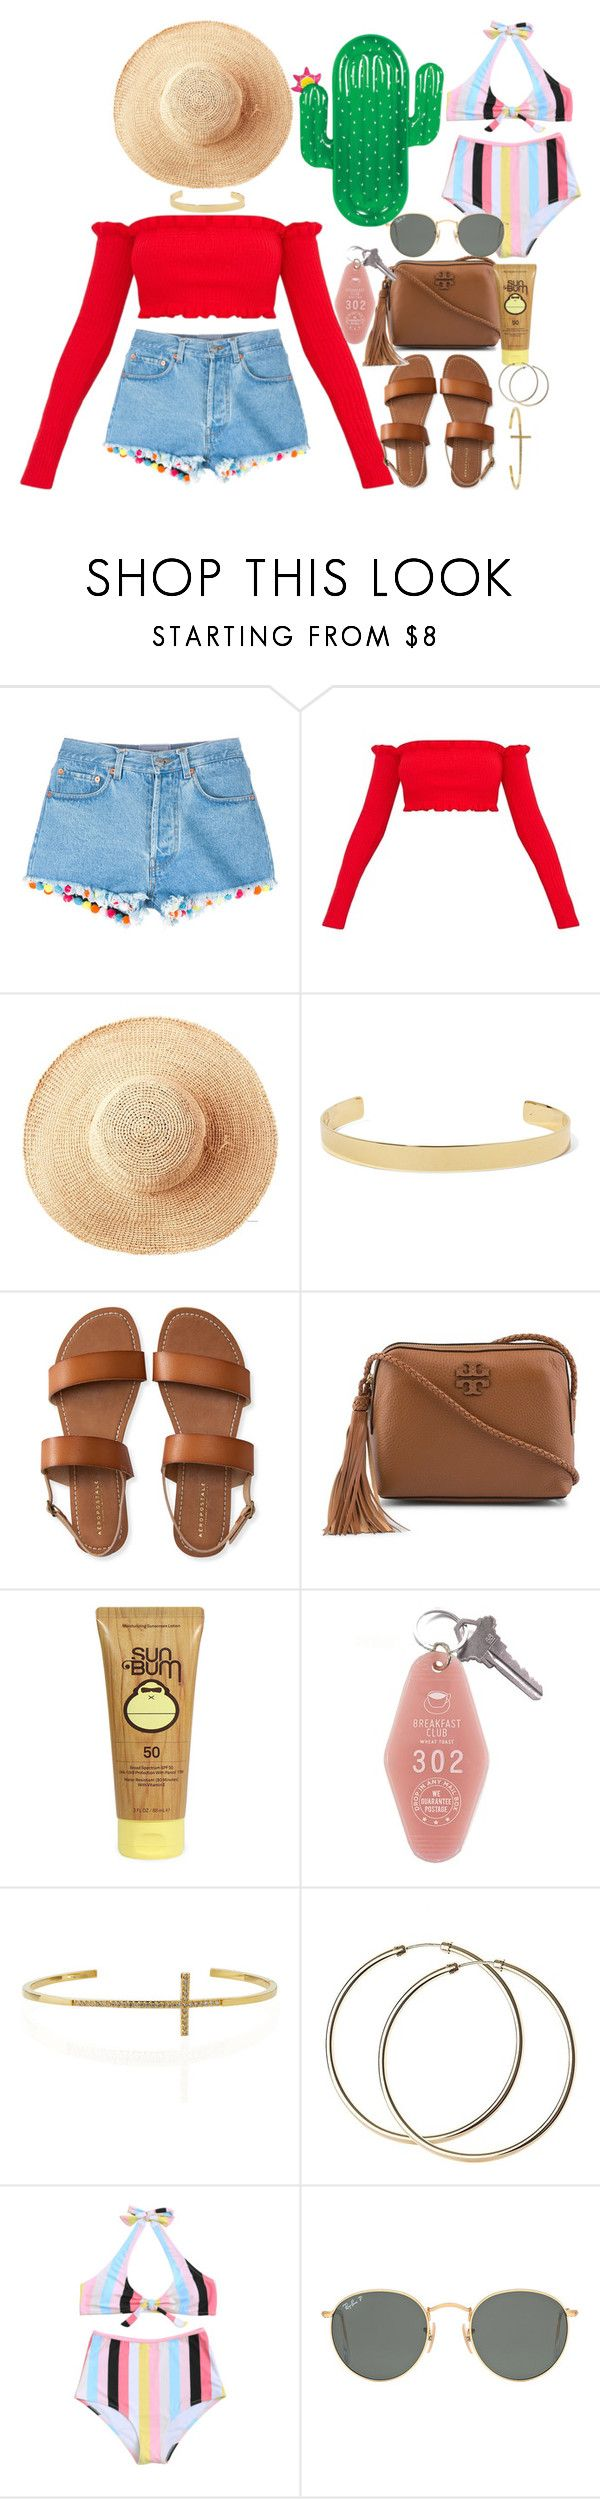 """Tropical Vacation!"" by valerienwashington ❤ liked on Polyvore featuring Forte Forte, Toast, Jennifer Fisher, Aéropostale, Tory Burch, Sun Bum, Tai, Ray-Ban and West Elm"